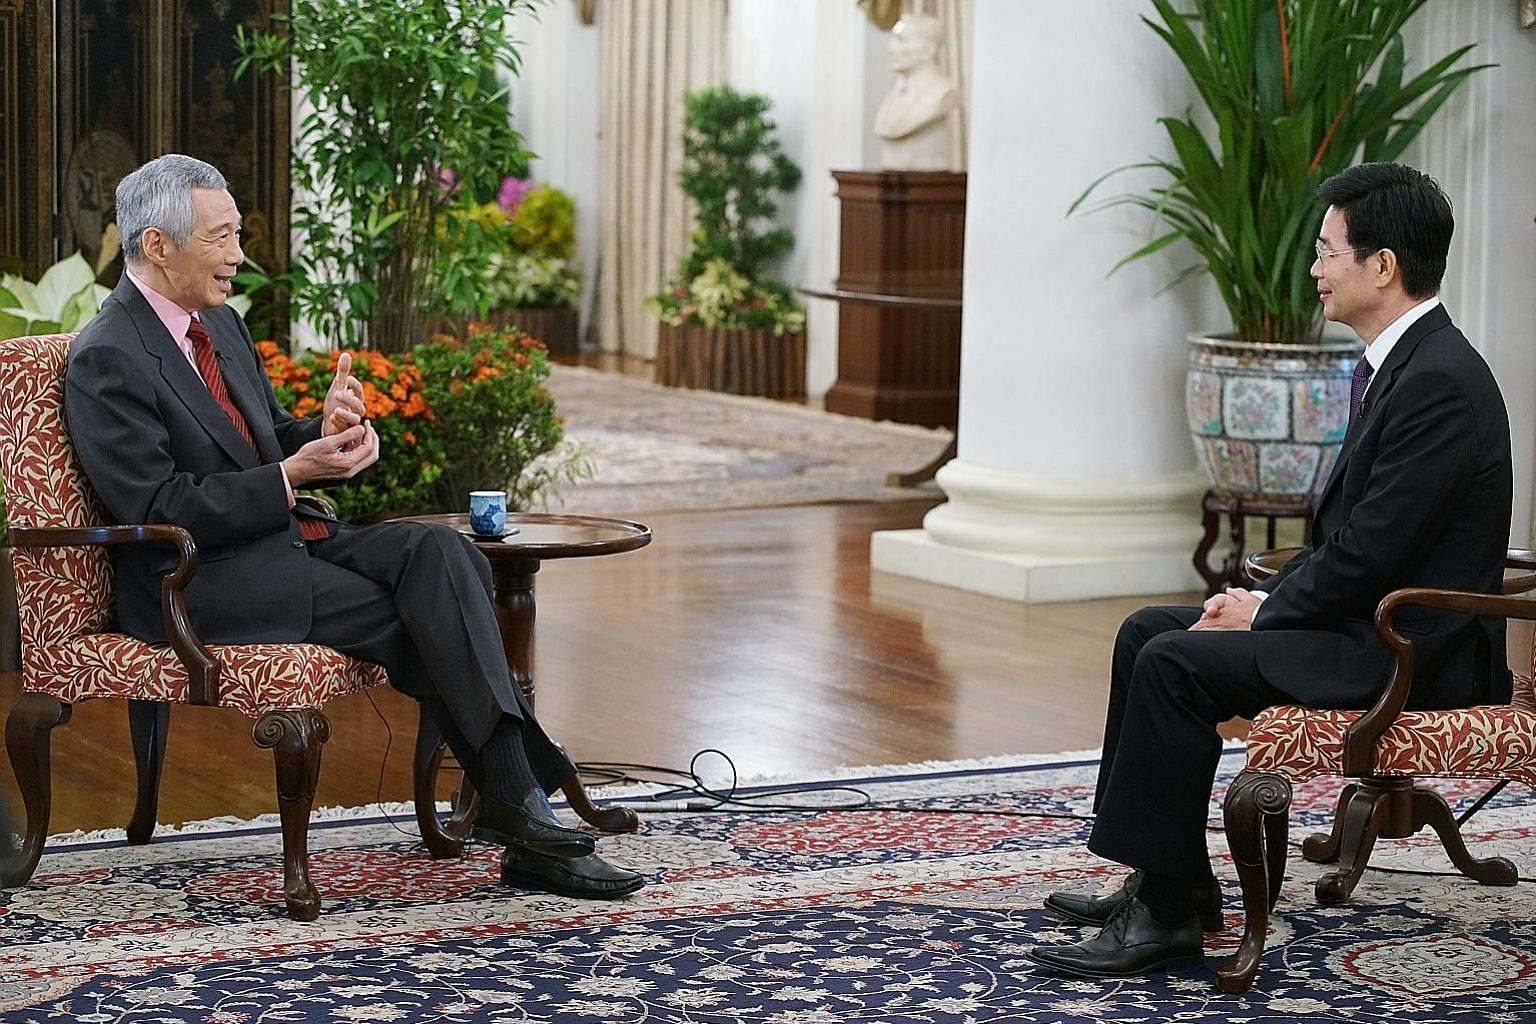 Prime Minister Lee Hsien Loong being interviewed by Xinhua news agency on Monday, ahead of the second Belt and Road forum, which starts tomorrow. In the interview, PM Lee touched on China's Belt and Road Initiative as well as Singapore-China ties.